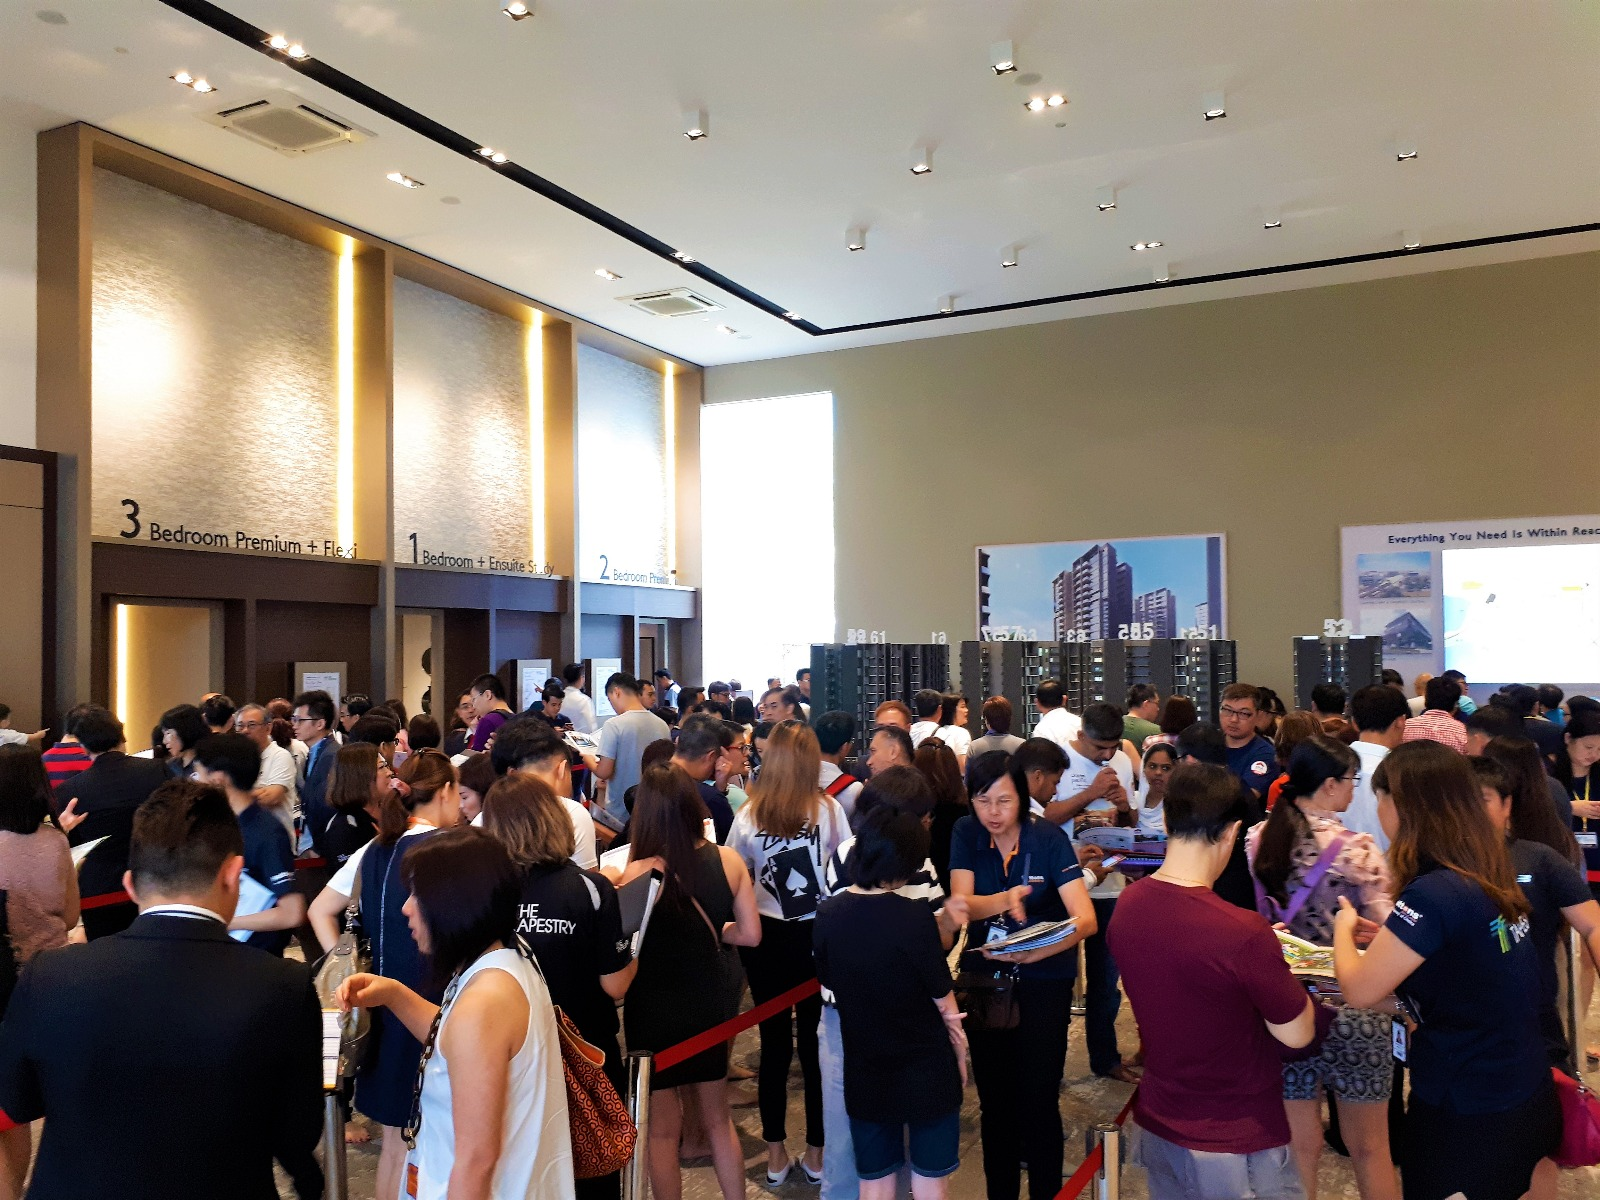 Crowds at The Tapestry's showflat during the weekend of its preview (March 10 & 11) (Credit: Huttons Asia) - EDGEPROP SINGAPORE